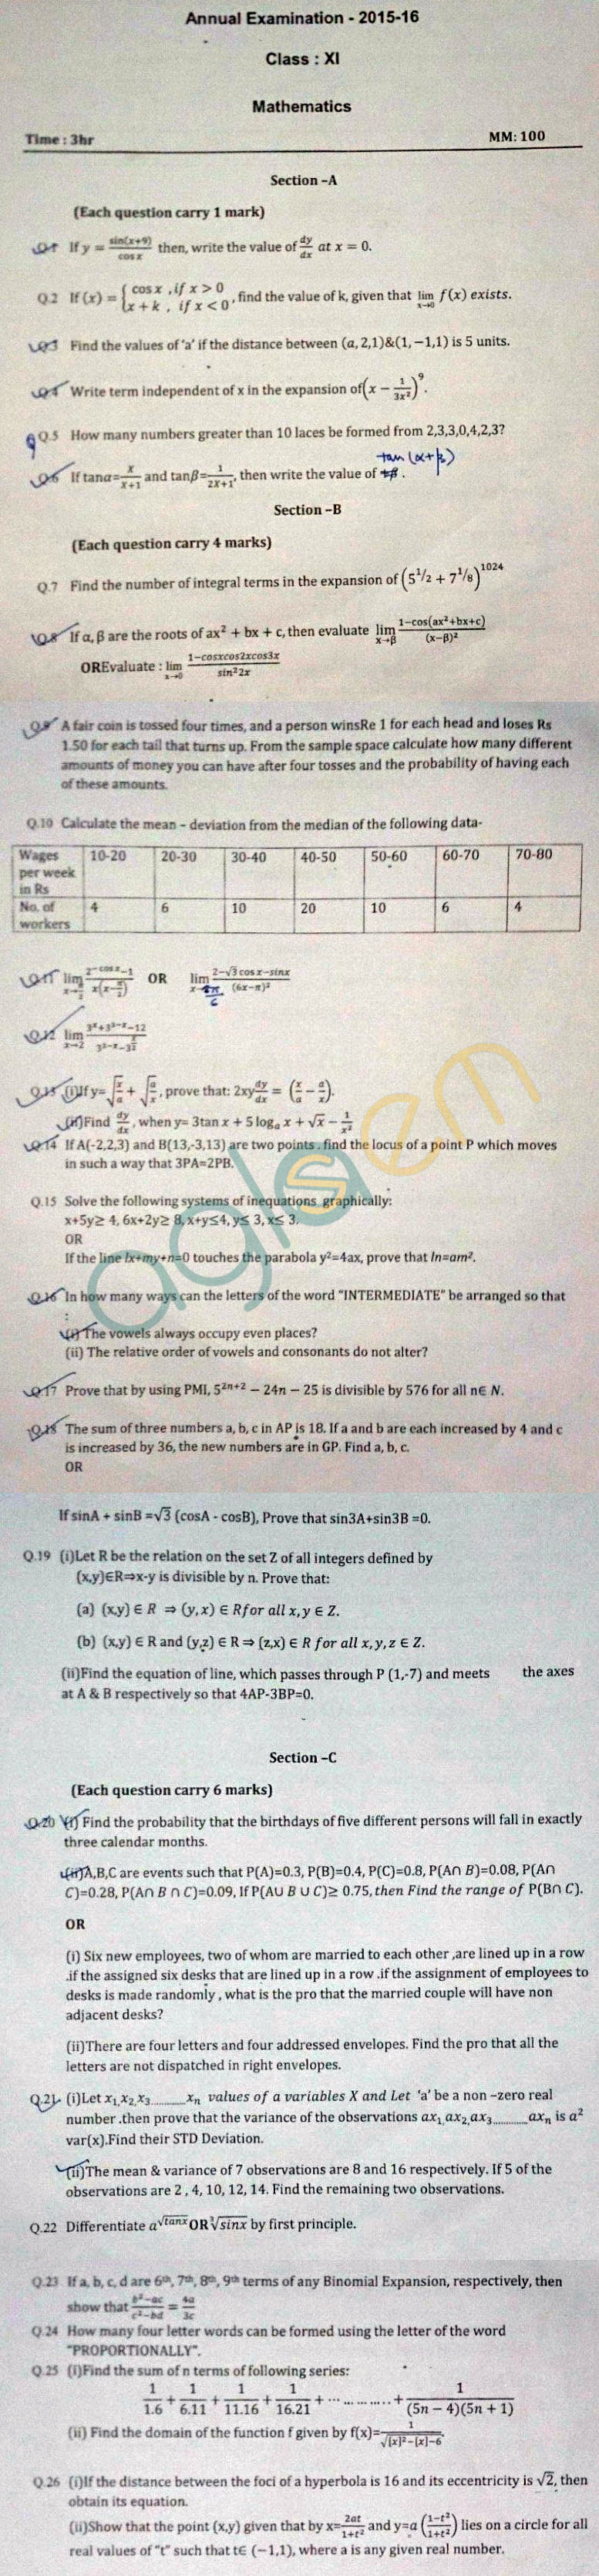 CBSE Class 11 Annual Exam Question Papers – Mathematics